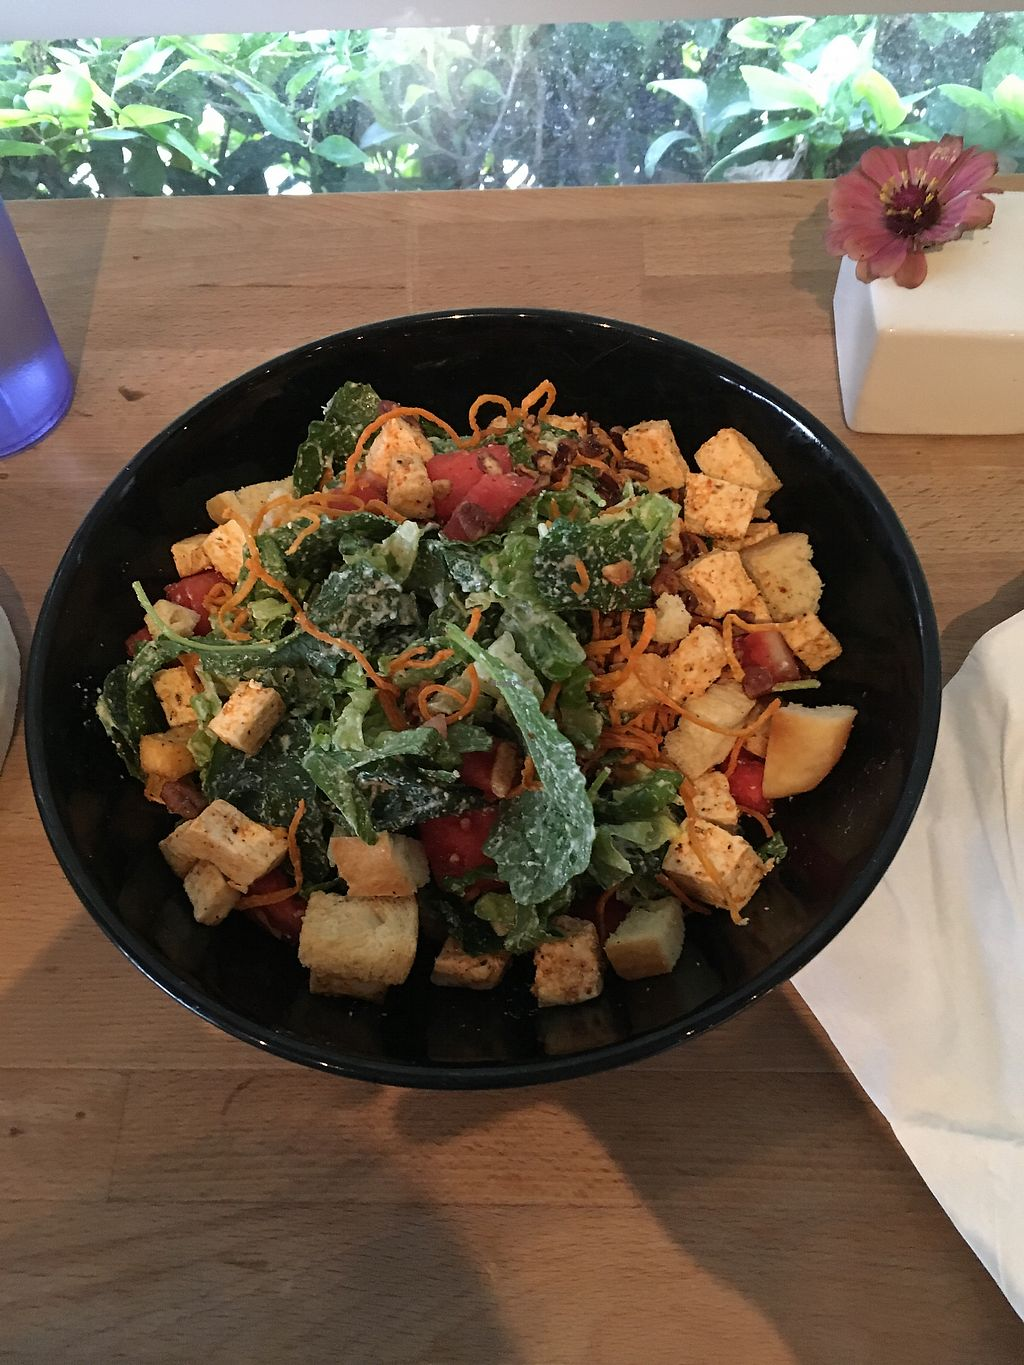 """Photo of Local Foods - The Village  by <a href=""""/members/profile/ChristineLee"""">ChristineLee</a> <br/>caesar salad <br/> August 8, 2017  - <a href='/contact/abuse/image/69686/290269'>Report</a>"""